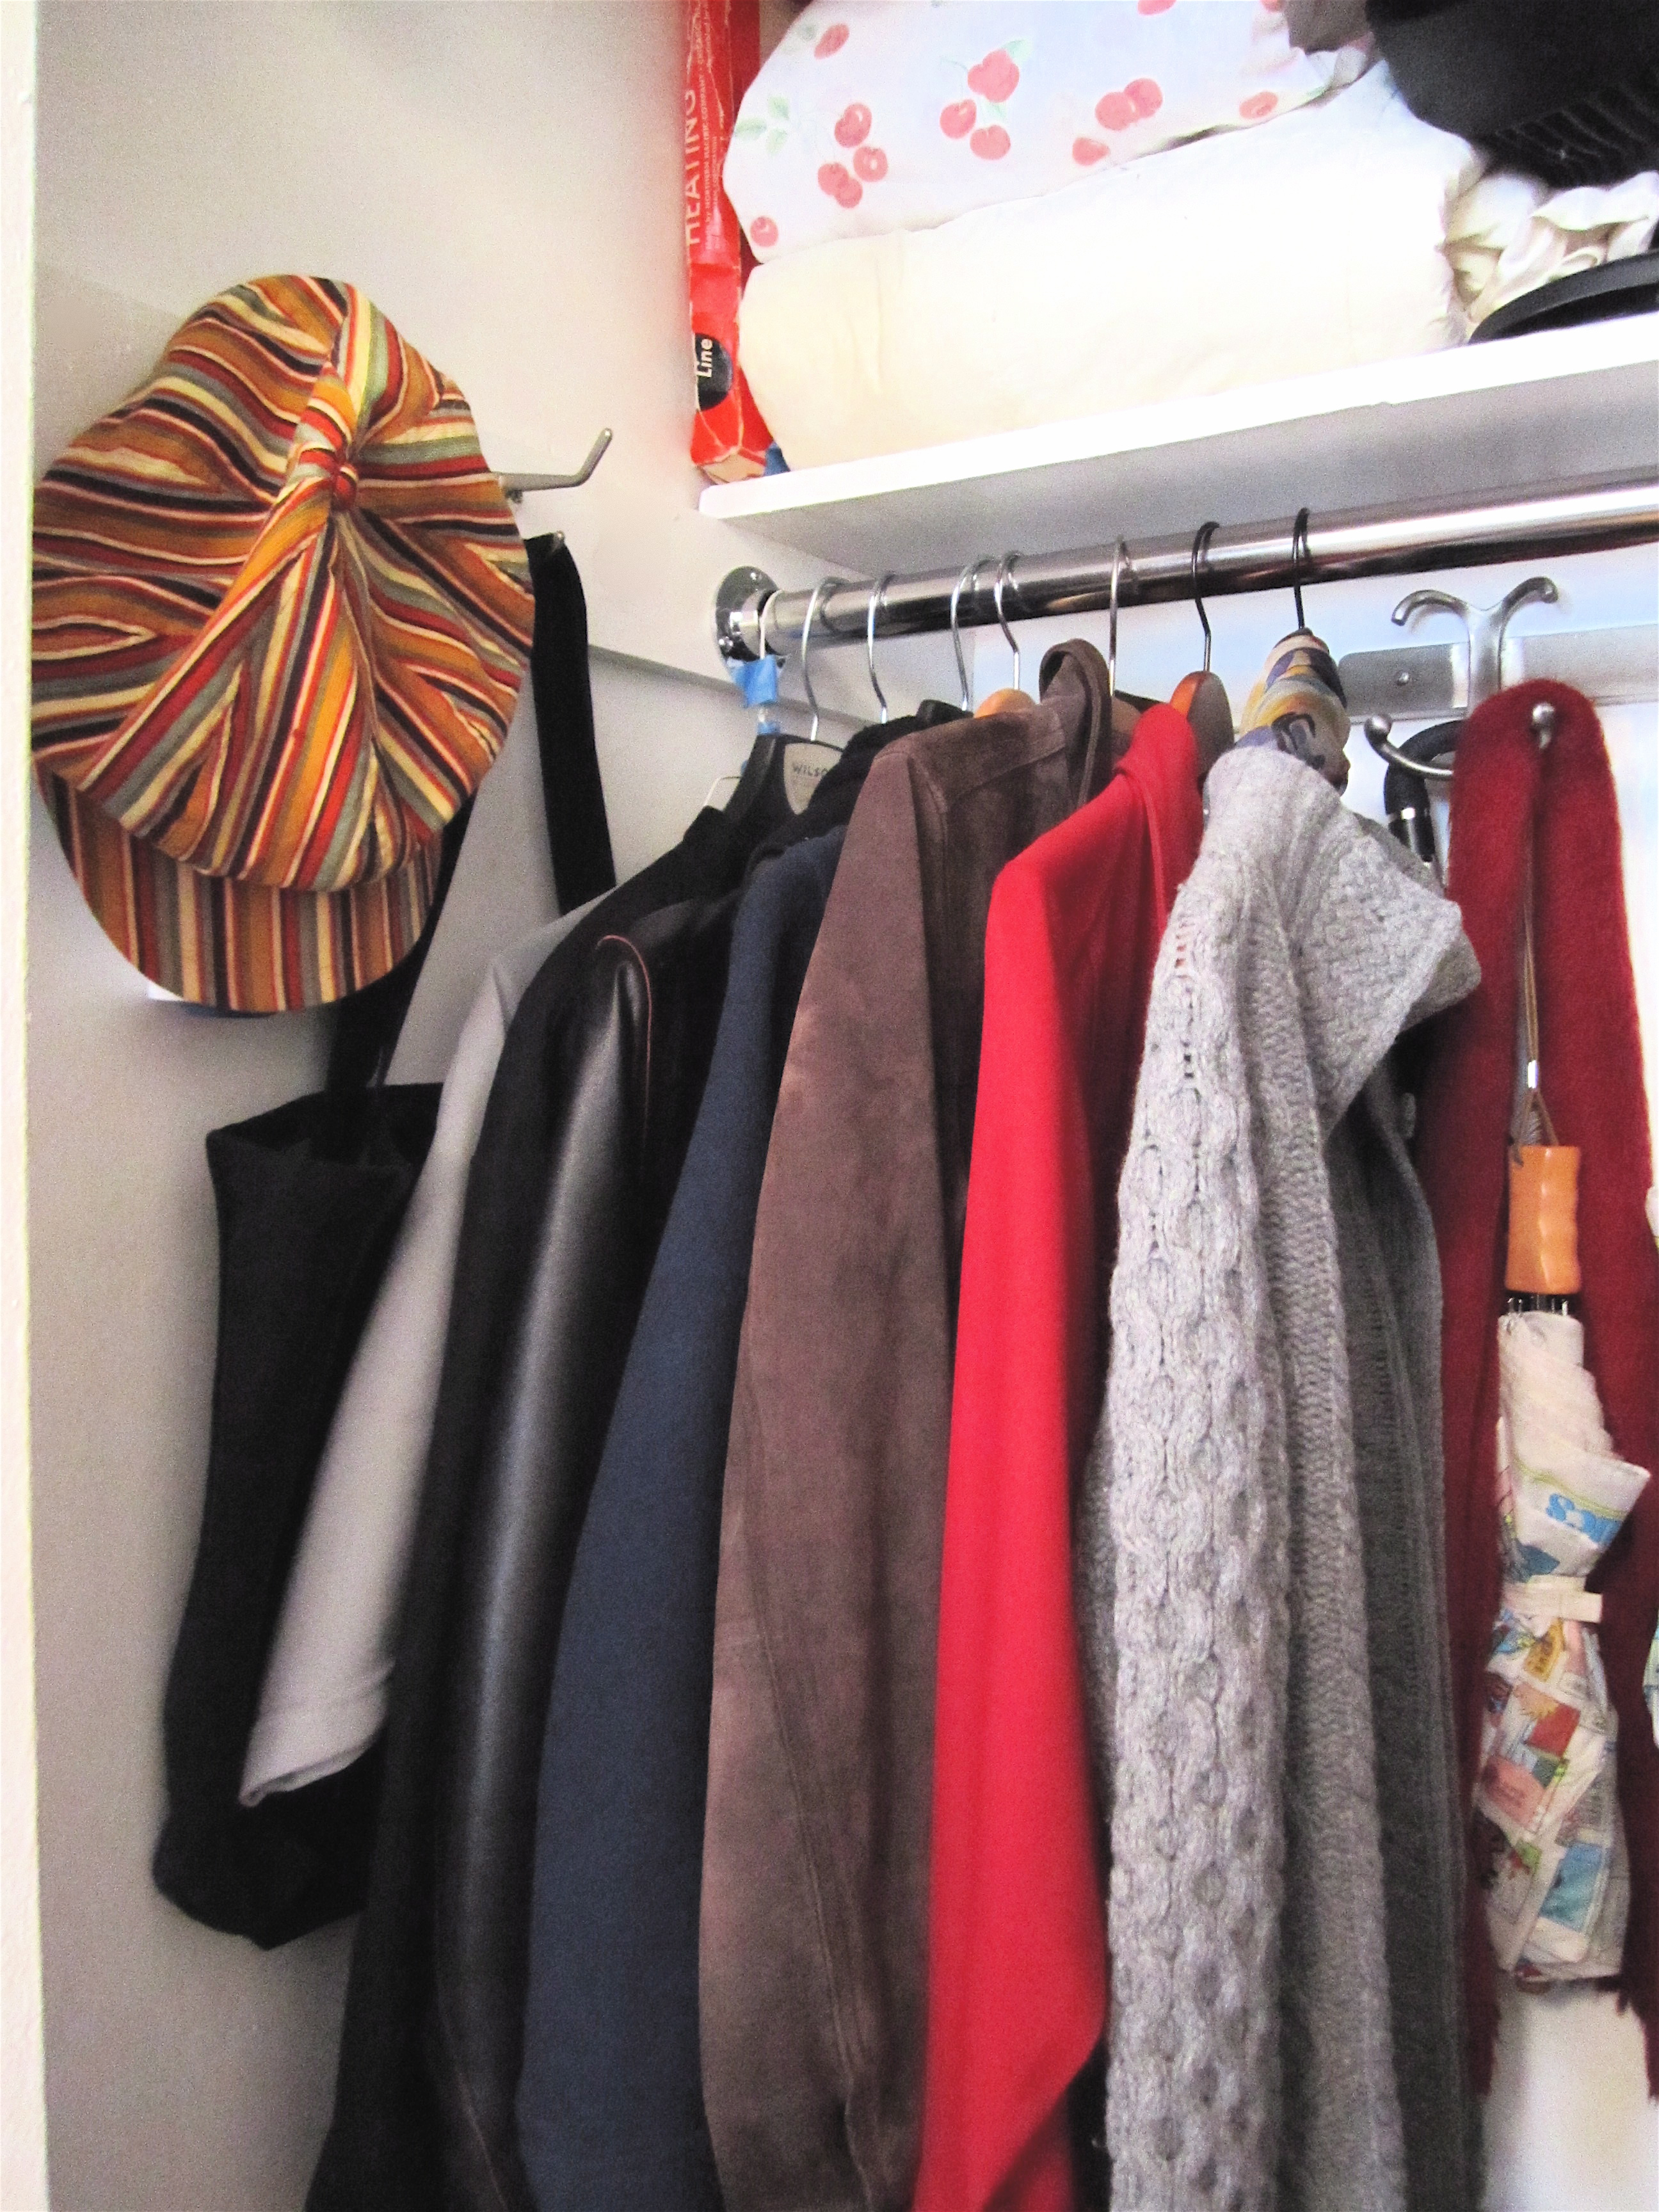 This Closet Was Organized Re Using Things This Client Already Had, With The  Exception Of The Shiny New Closet Rod. There Are 2 Small Pieces Of Luggage  ...